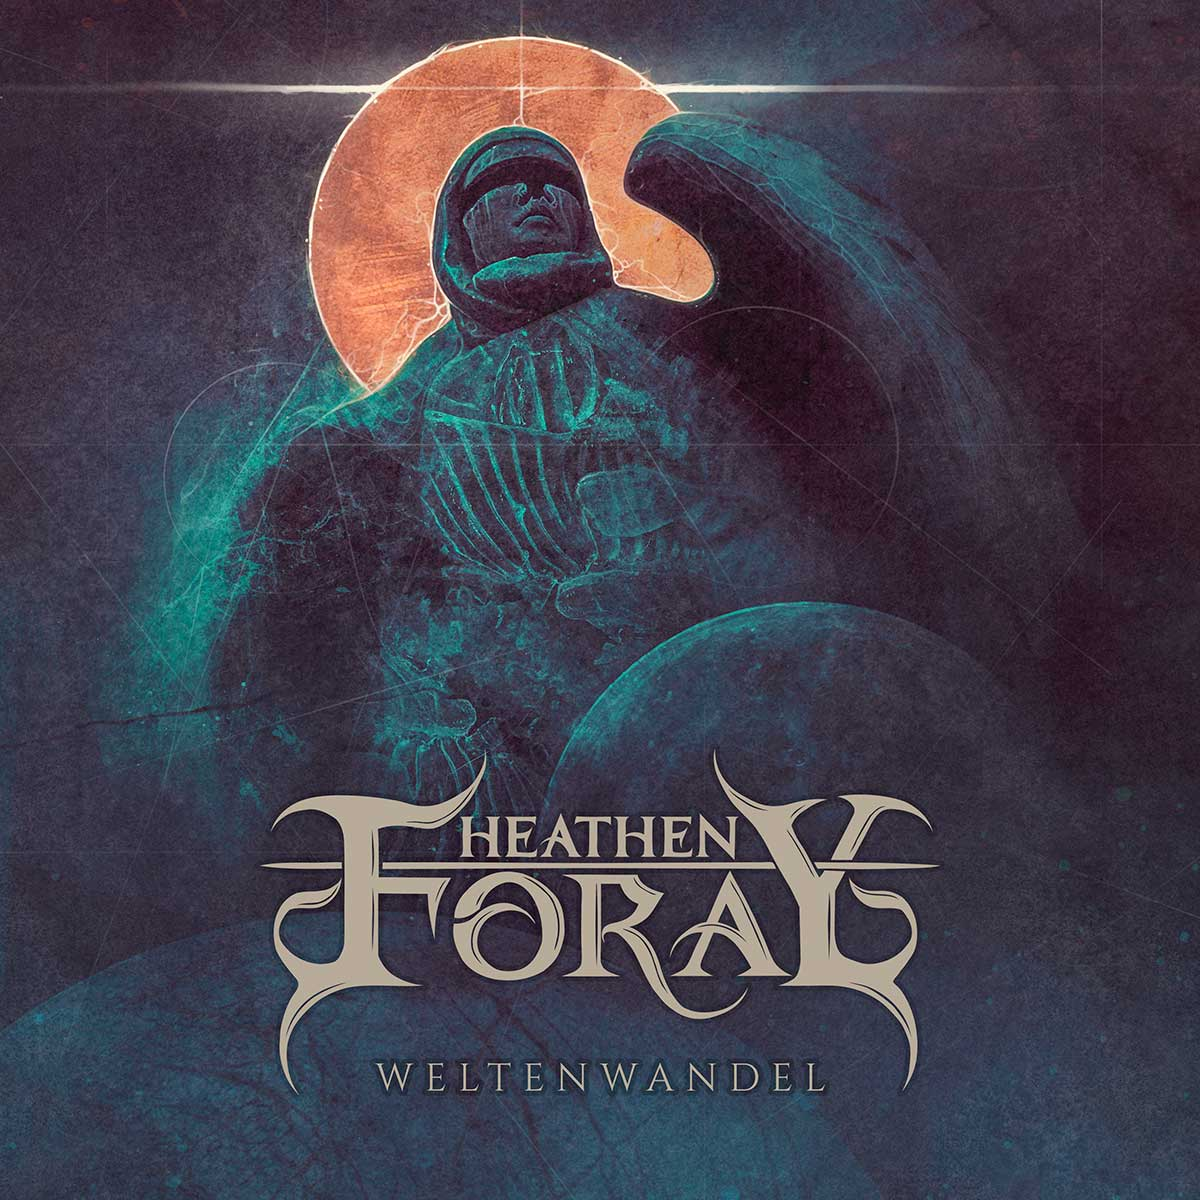 Cover of Weltenwandel by Heathen Foray